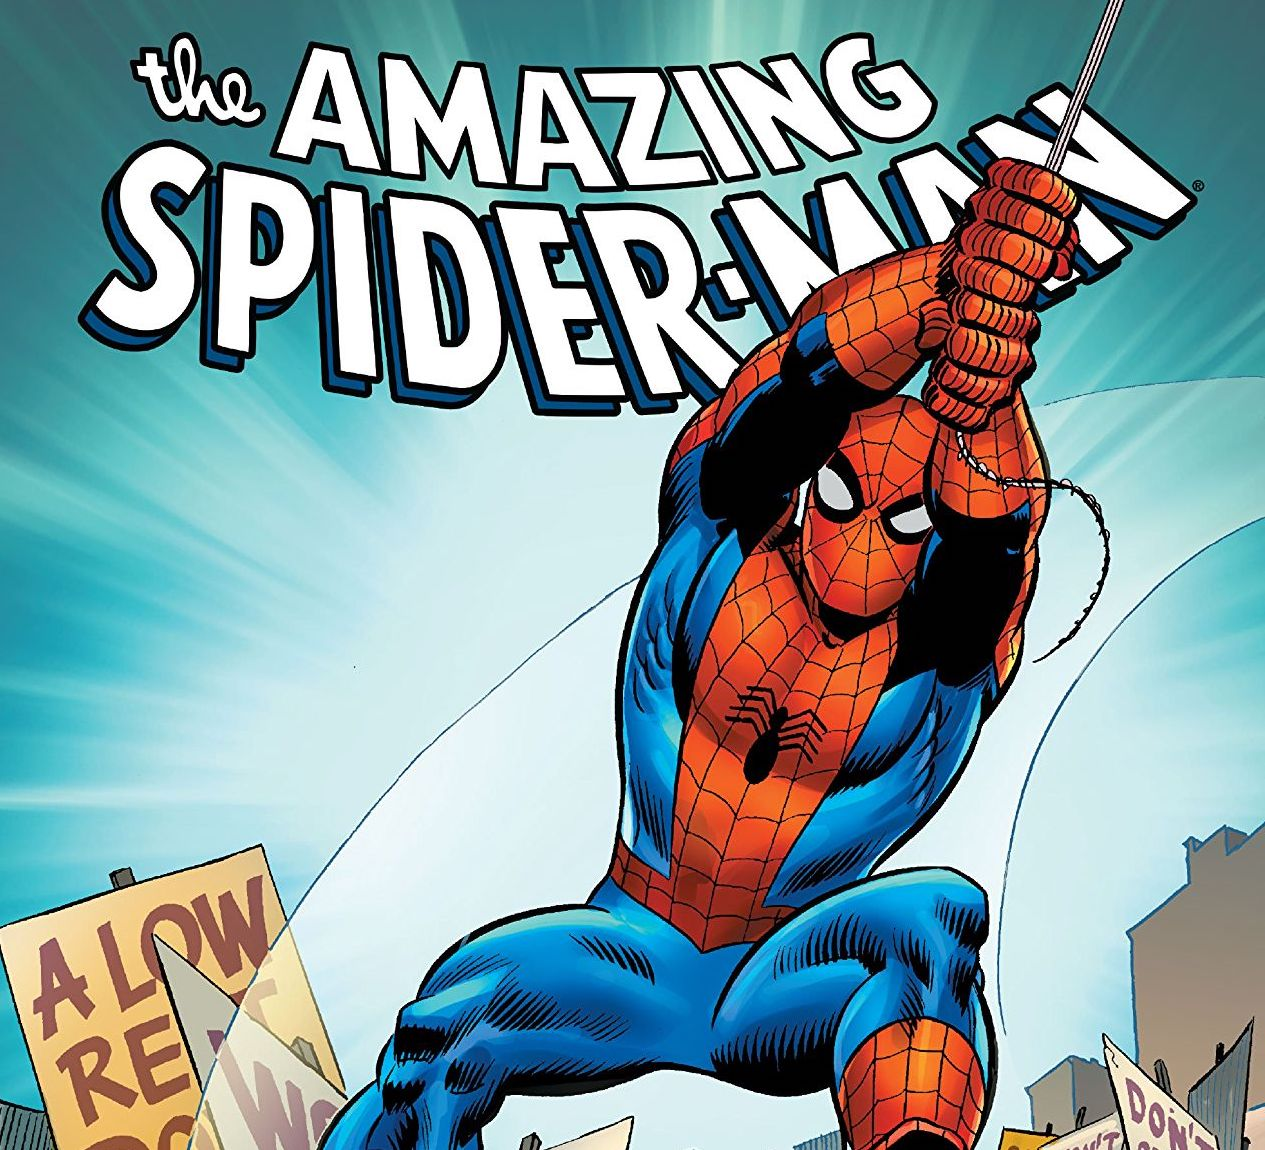 Stan Lee and John Romita form the building blocks of Spider-Man's legendary status during this run.